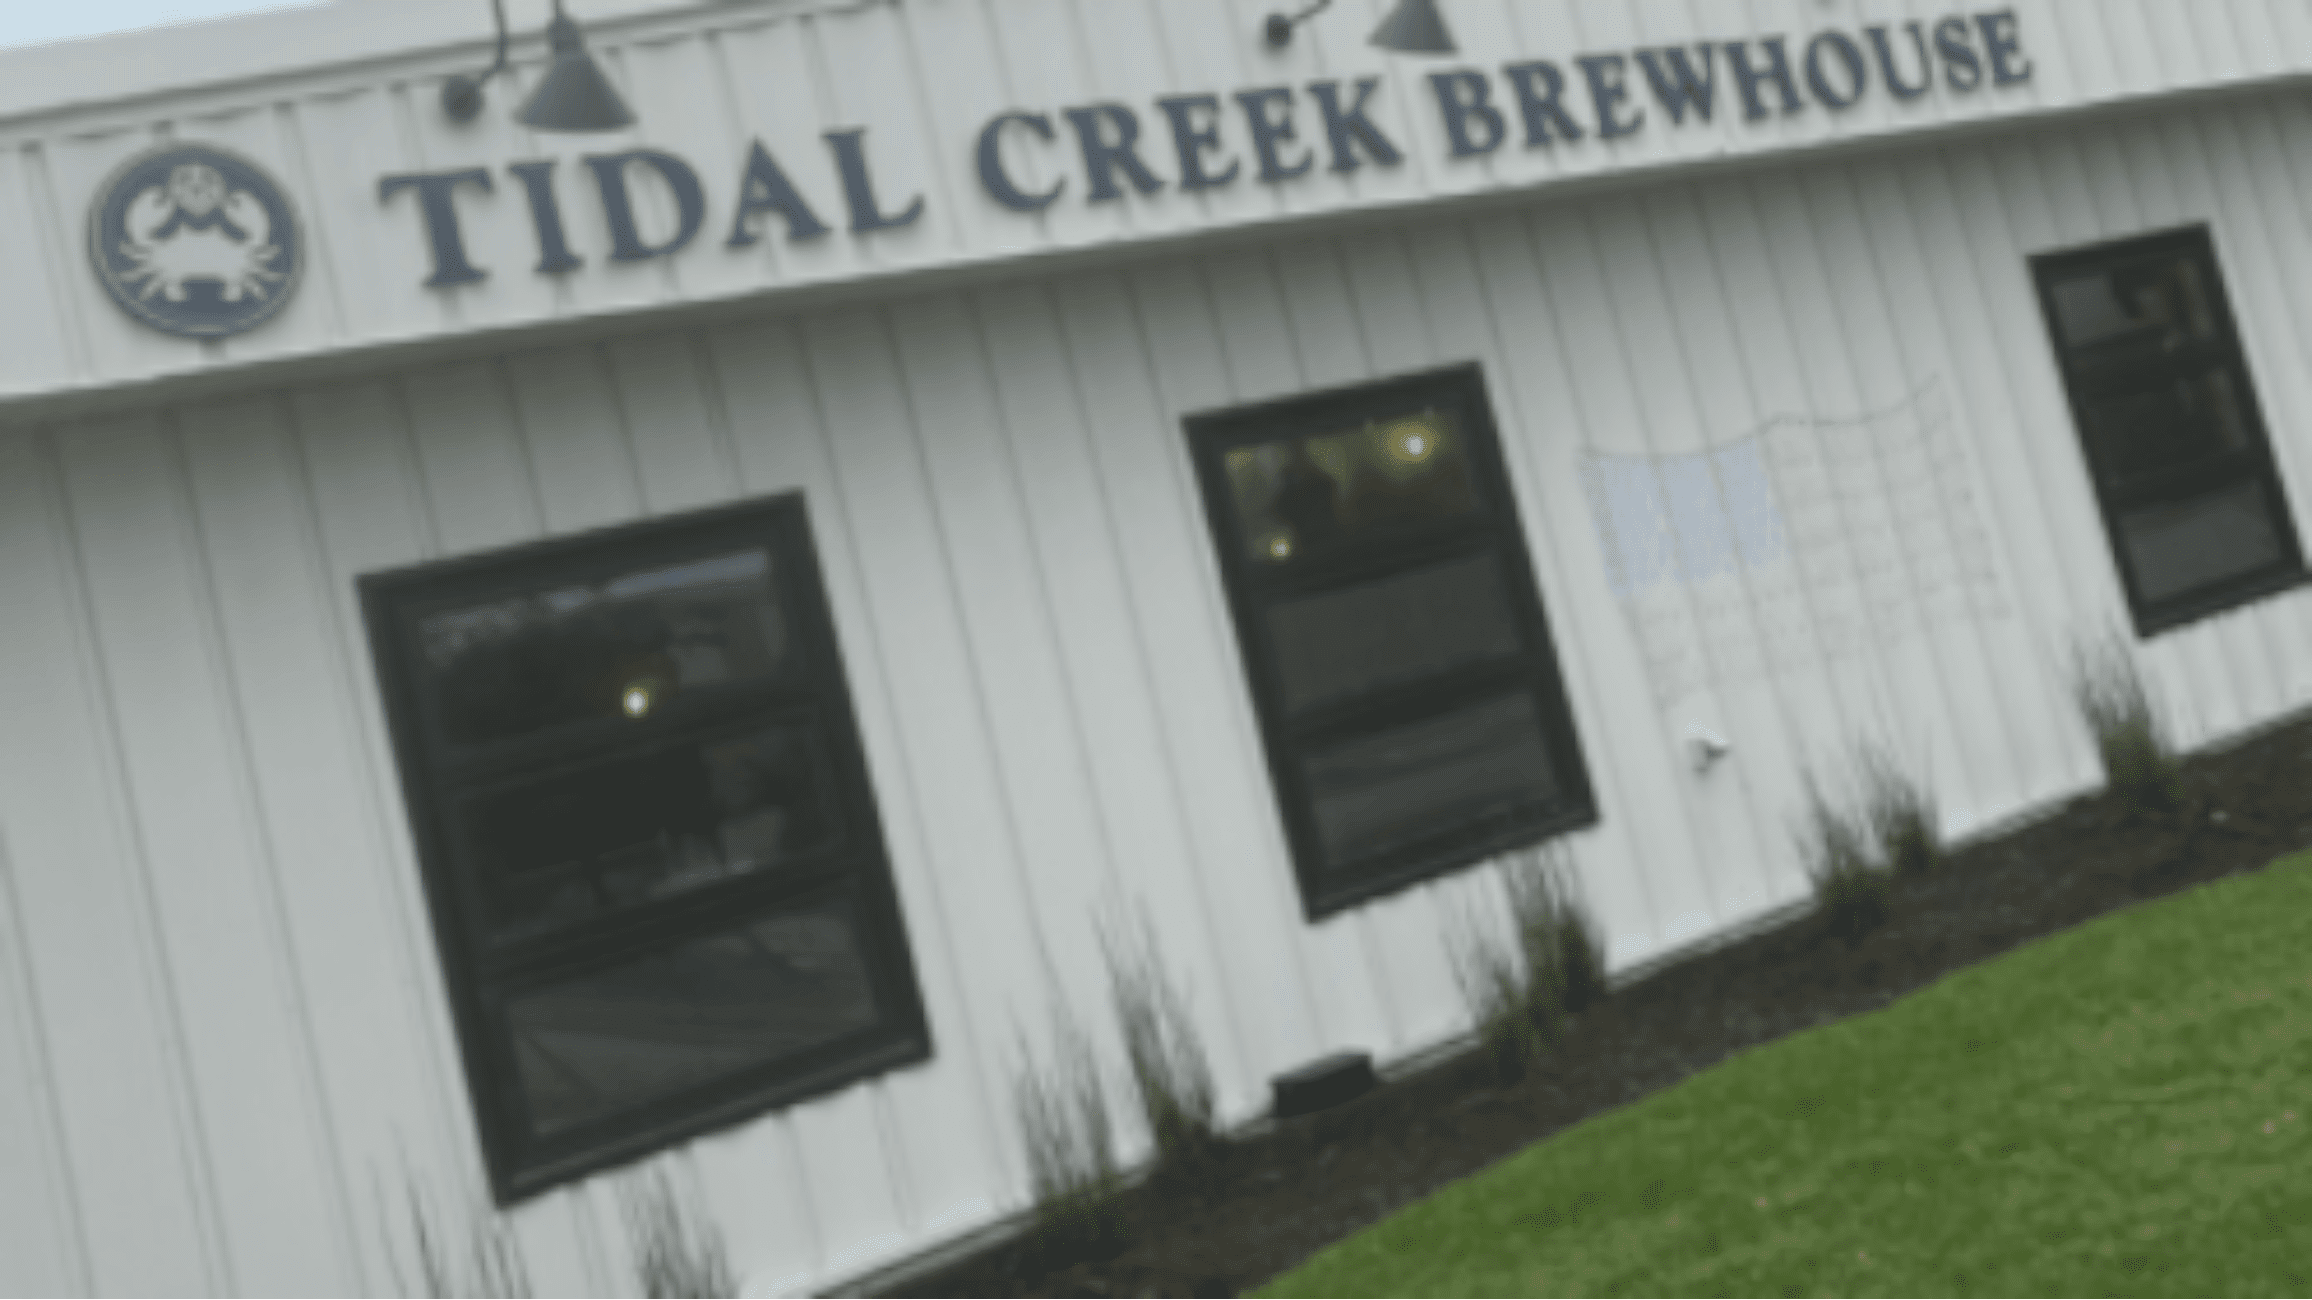 Tidal Creek Brewhouse opening